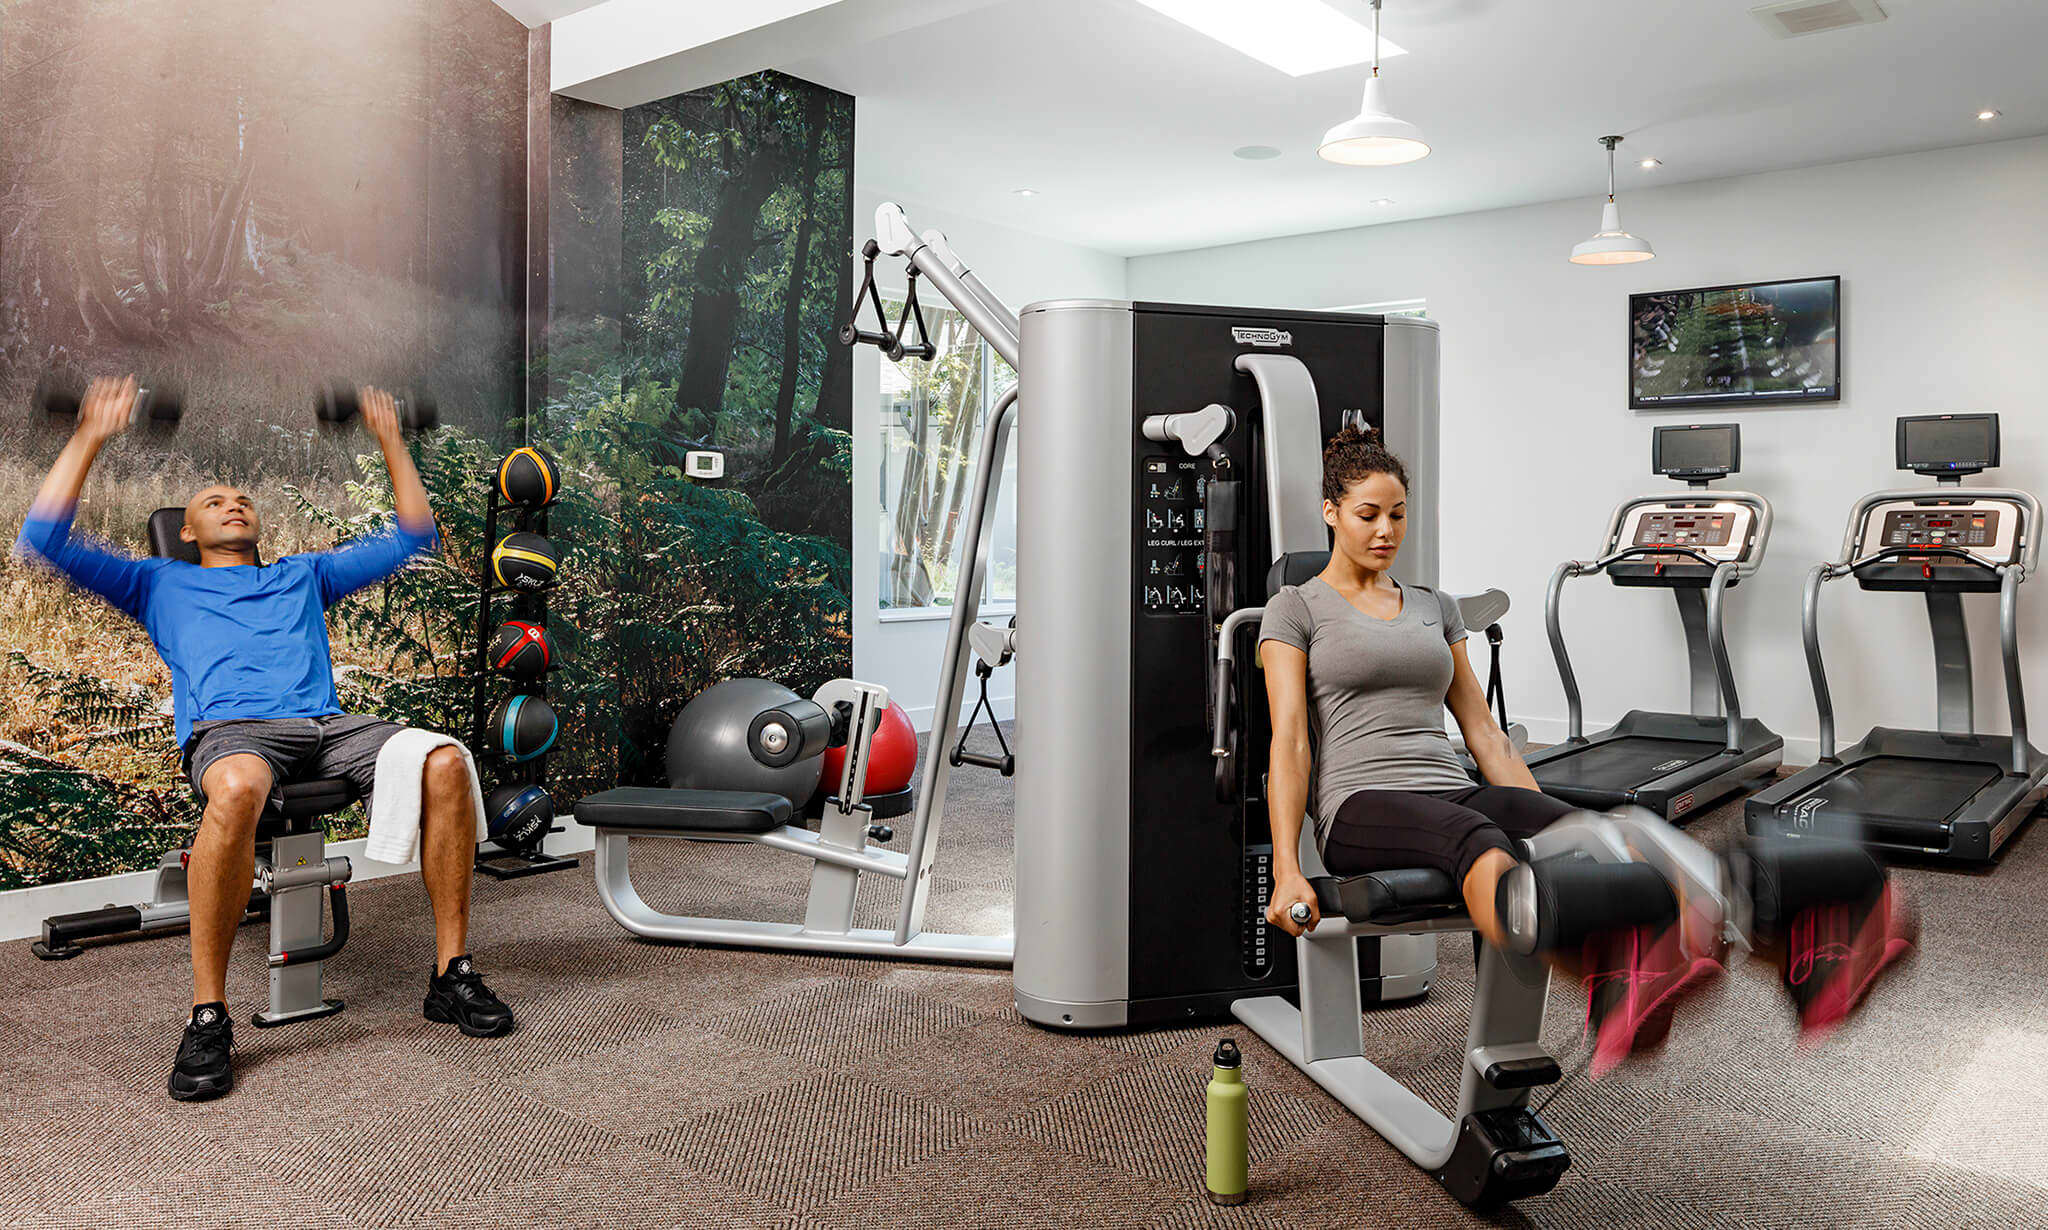 A man and woman exercising in an apartment fitness center